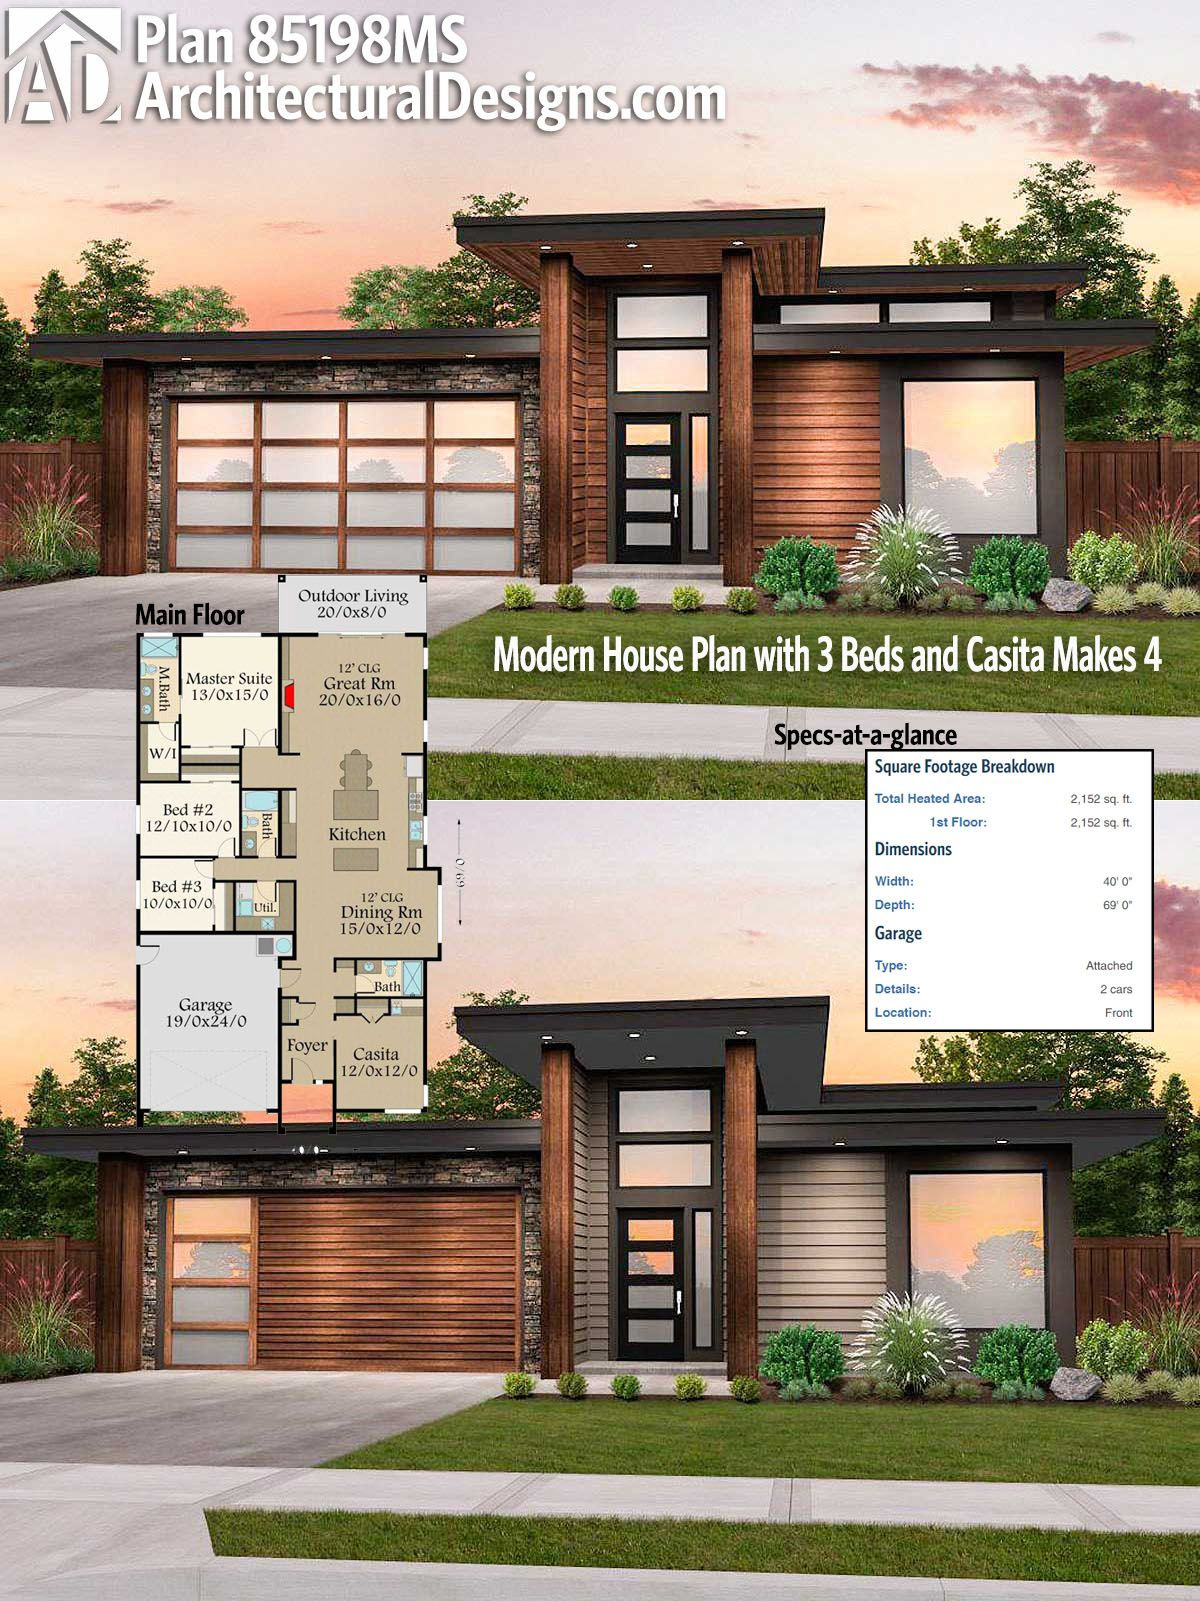 Contemporary House Plans for Sale Best Of Plan Ms Modern House Plan with 3 Beds and Casita Makes